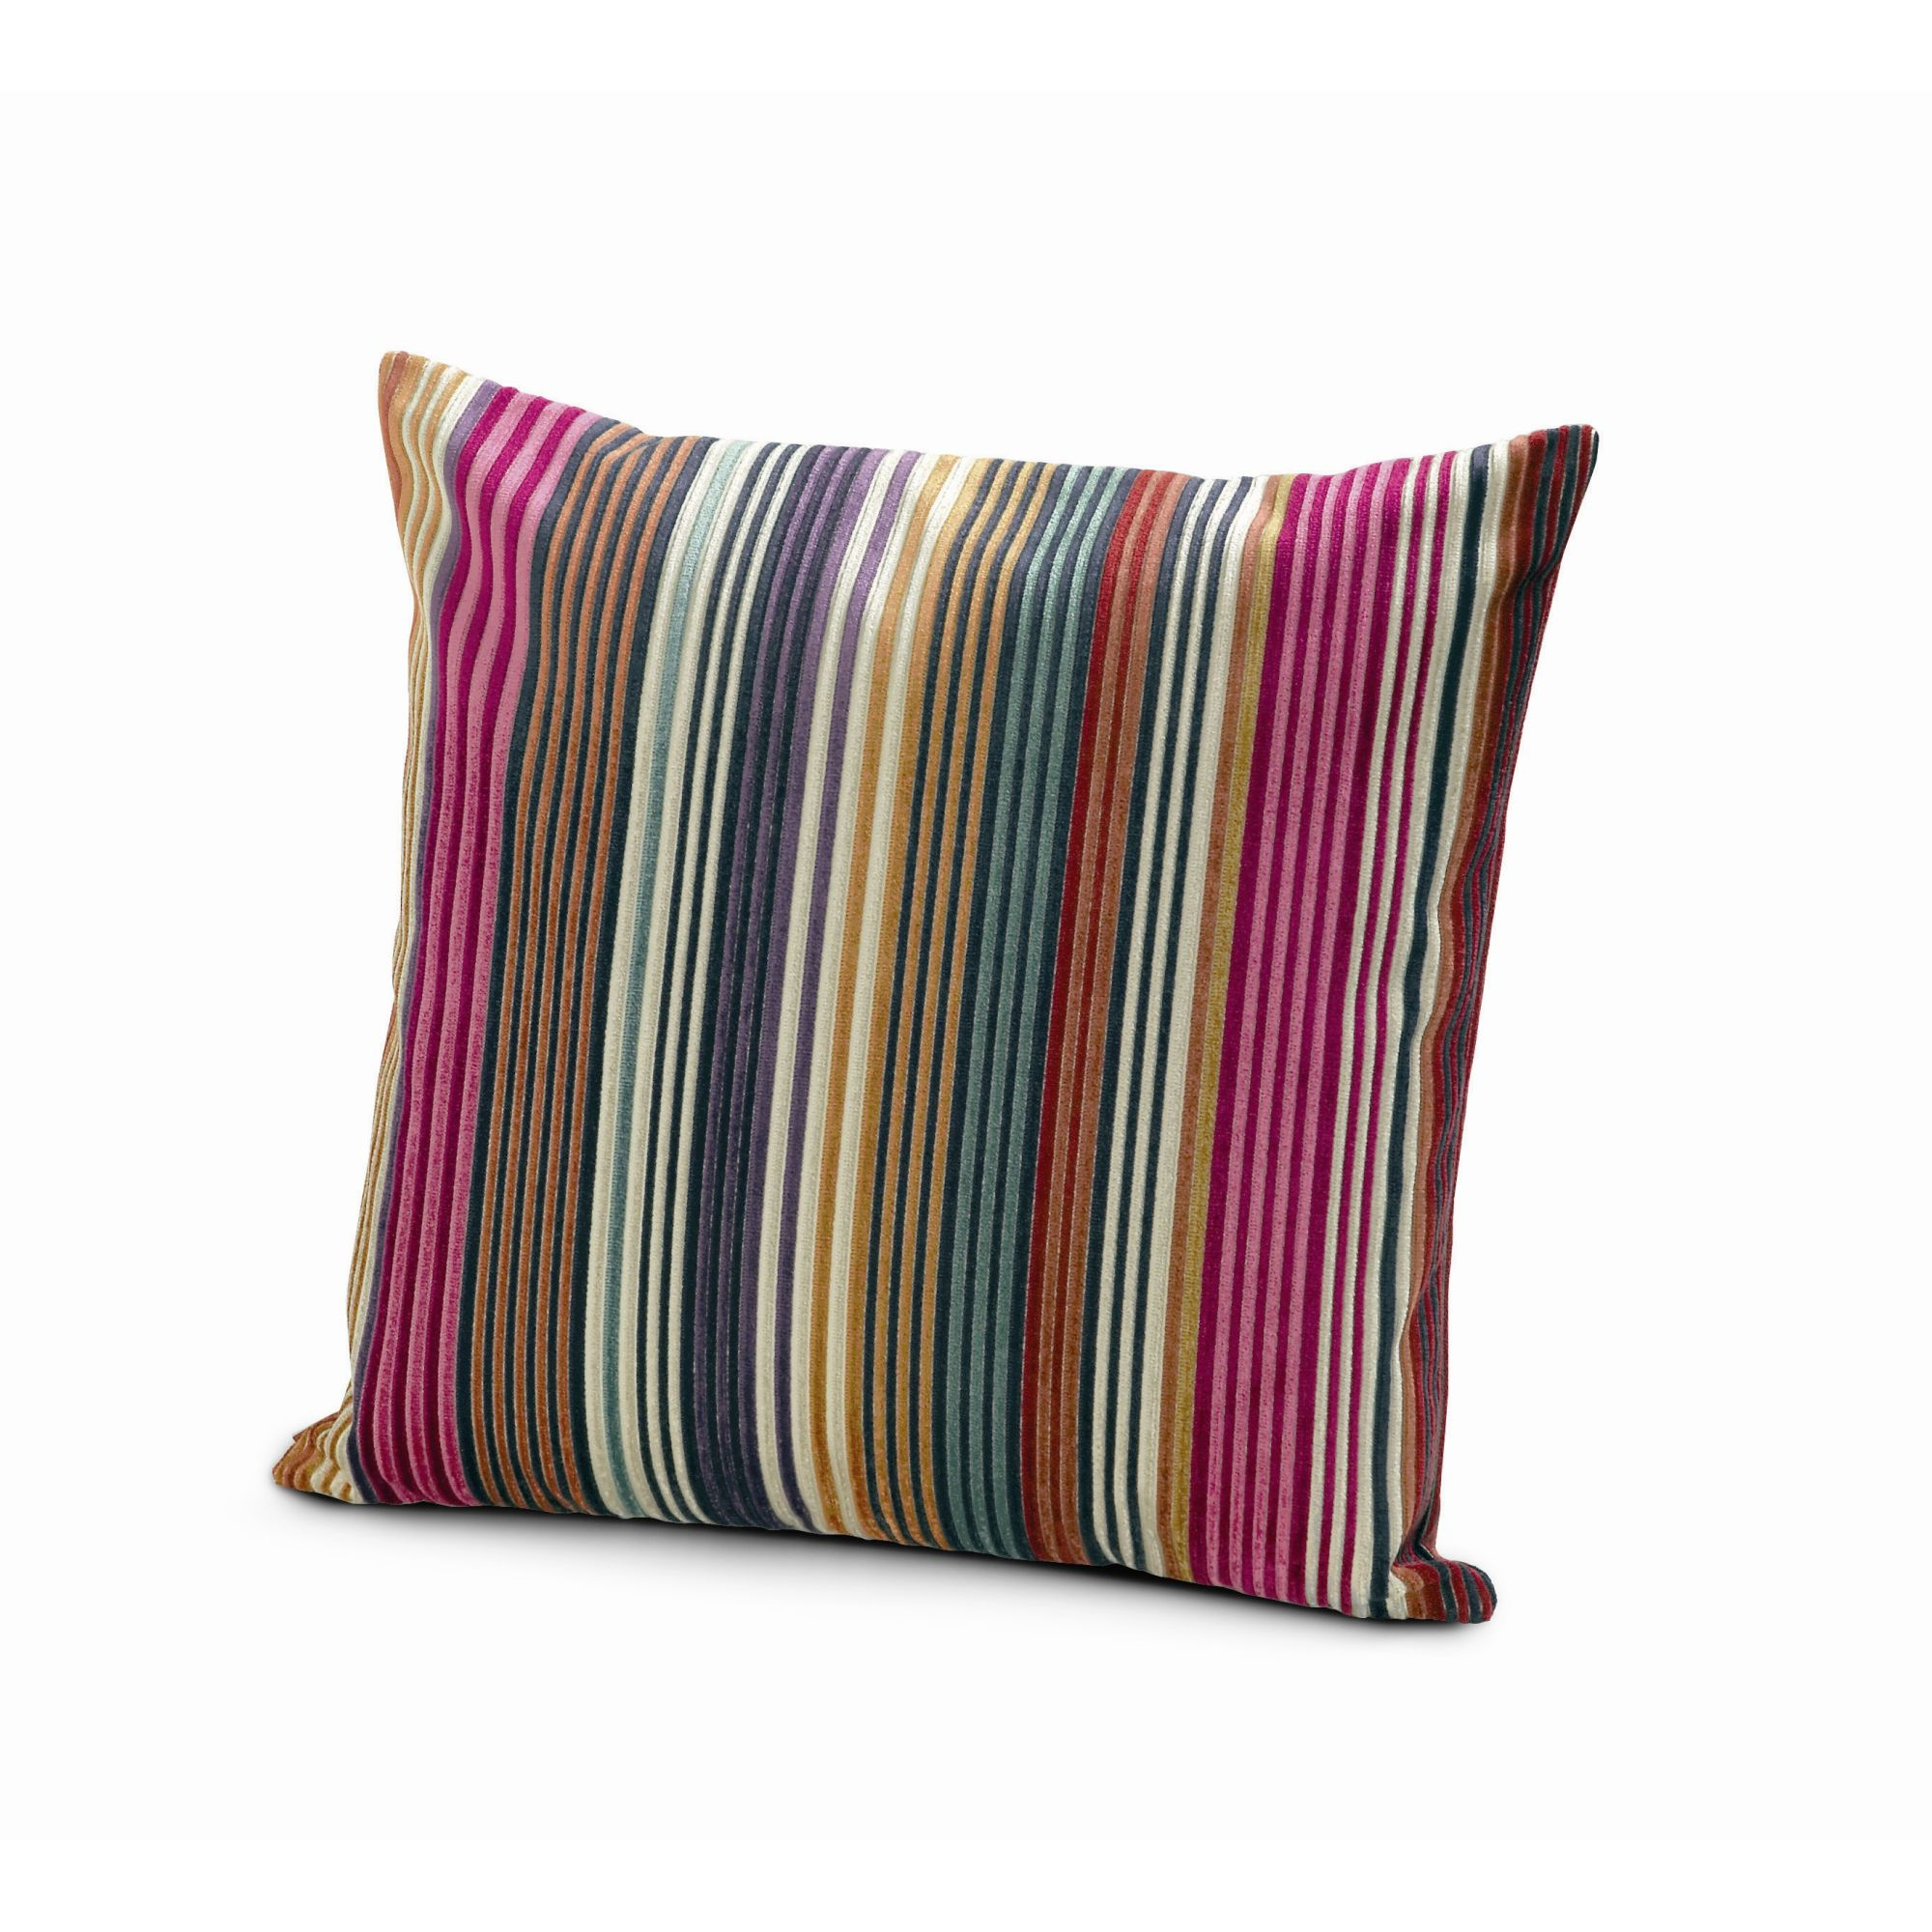 for jacquard rich missoni it collection motifs on decorative pin pillows mosaic missonihome s and pillow cushions garden rose